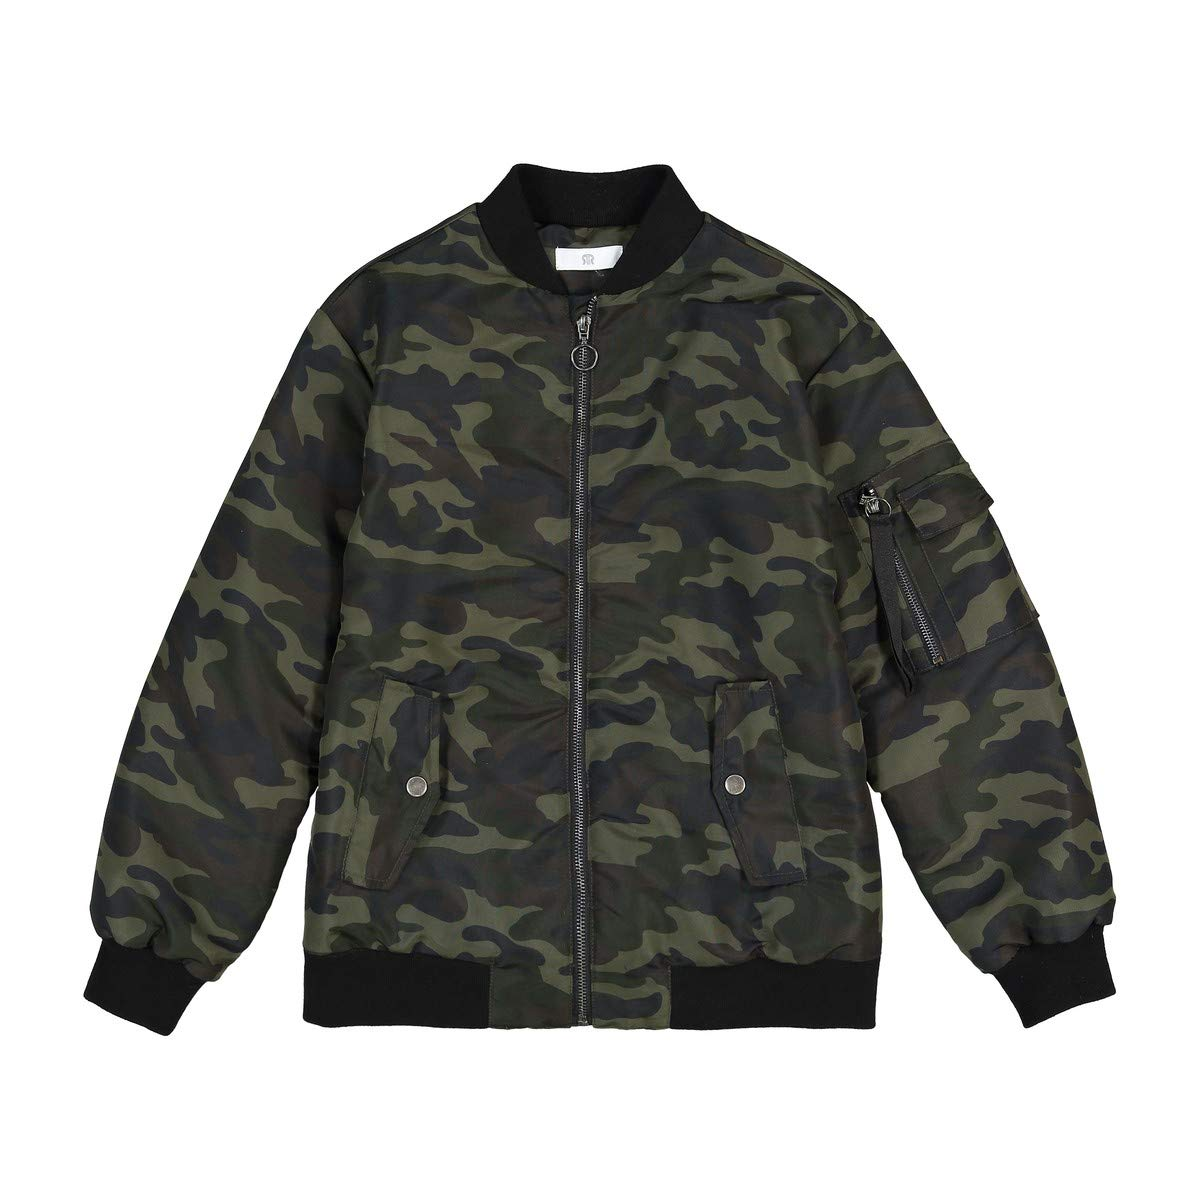 La Redoute Collections Big Boys Camouflage Bomber Jacket, 10-16 Years Green Size 14 Years - 63 in.